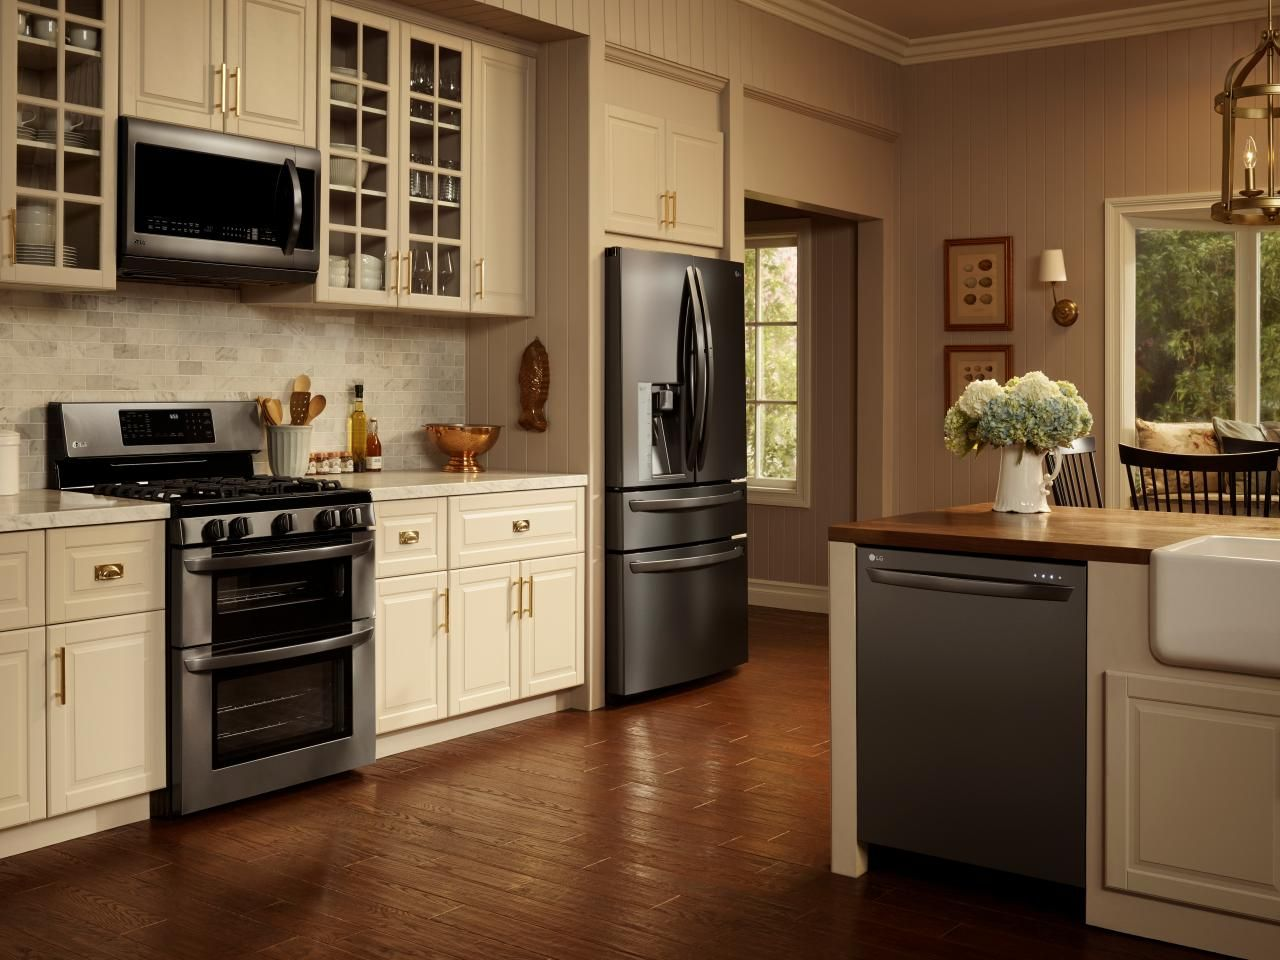 Uncategorized Classic Kitchen Appliances the key to classic is keeping it simple a neutral palette stainless appliances